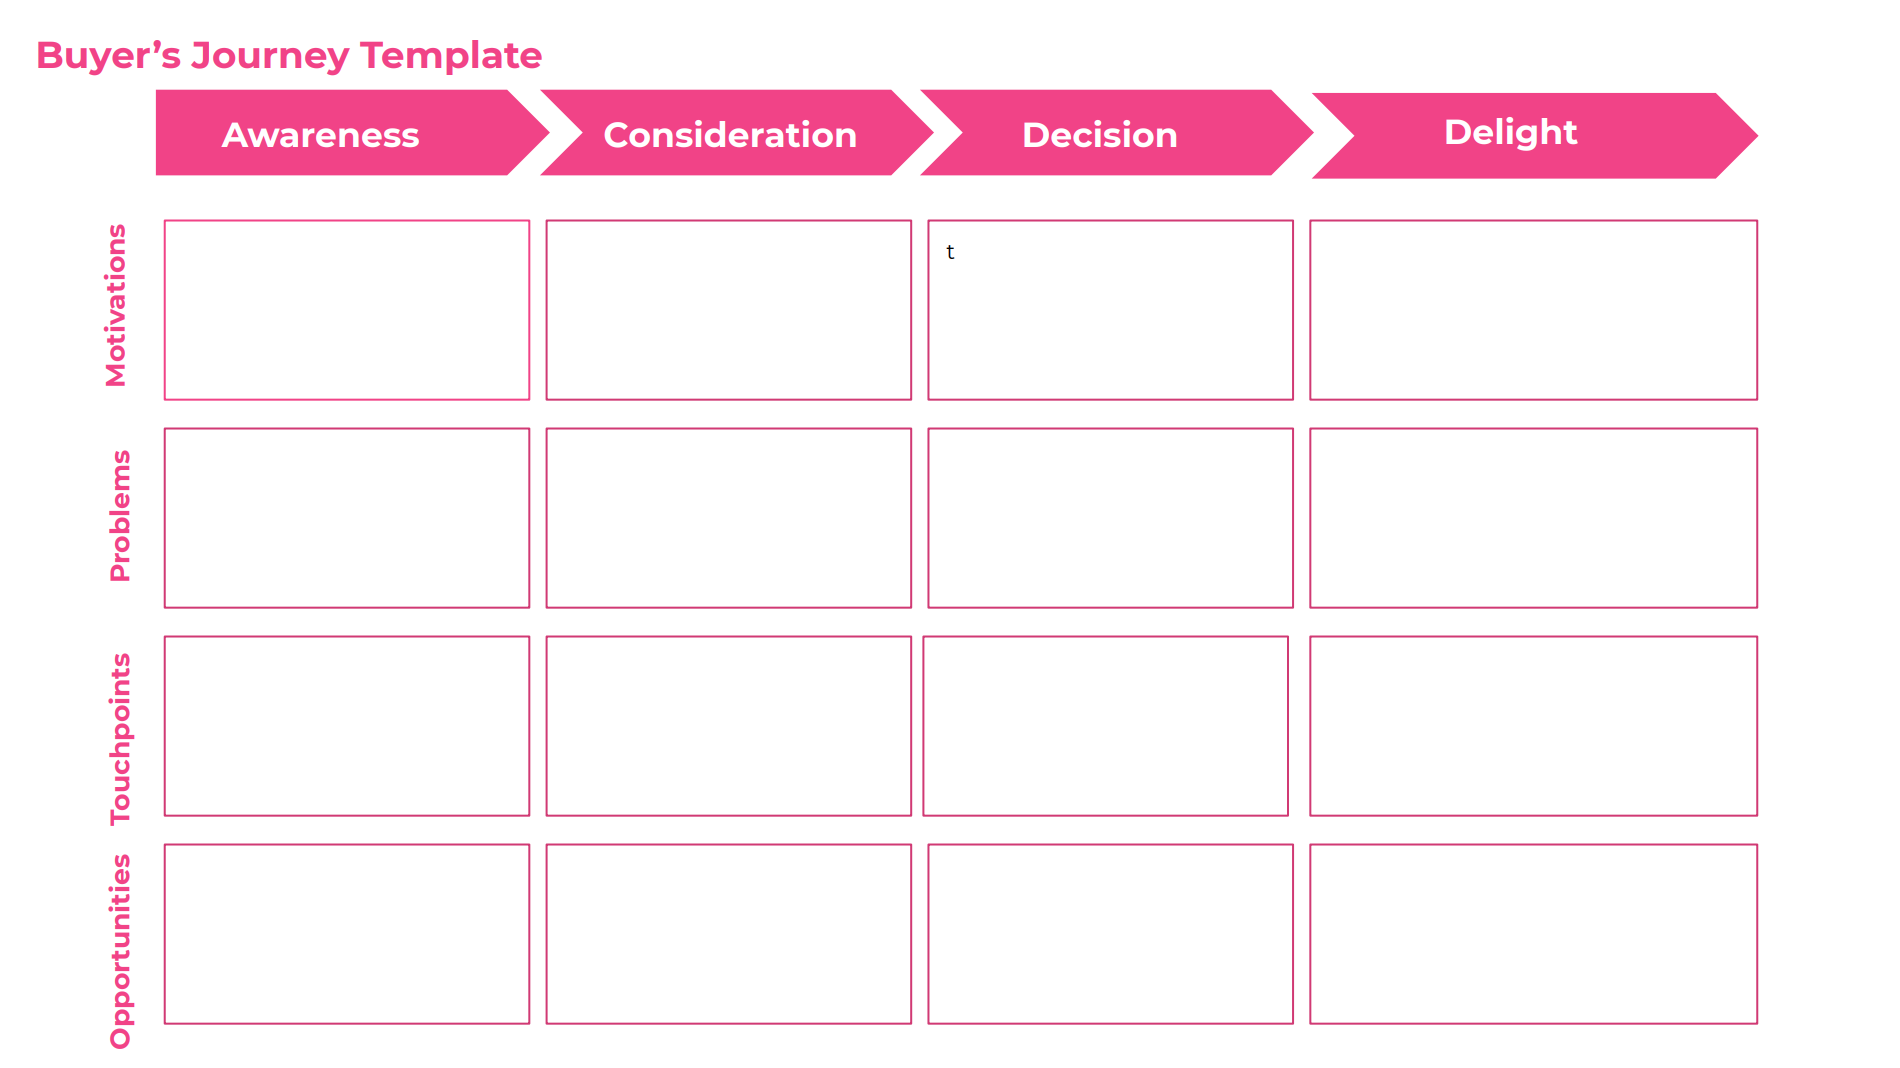 user journey template by virtue media